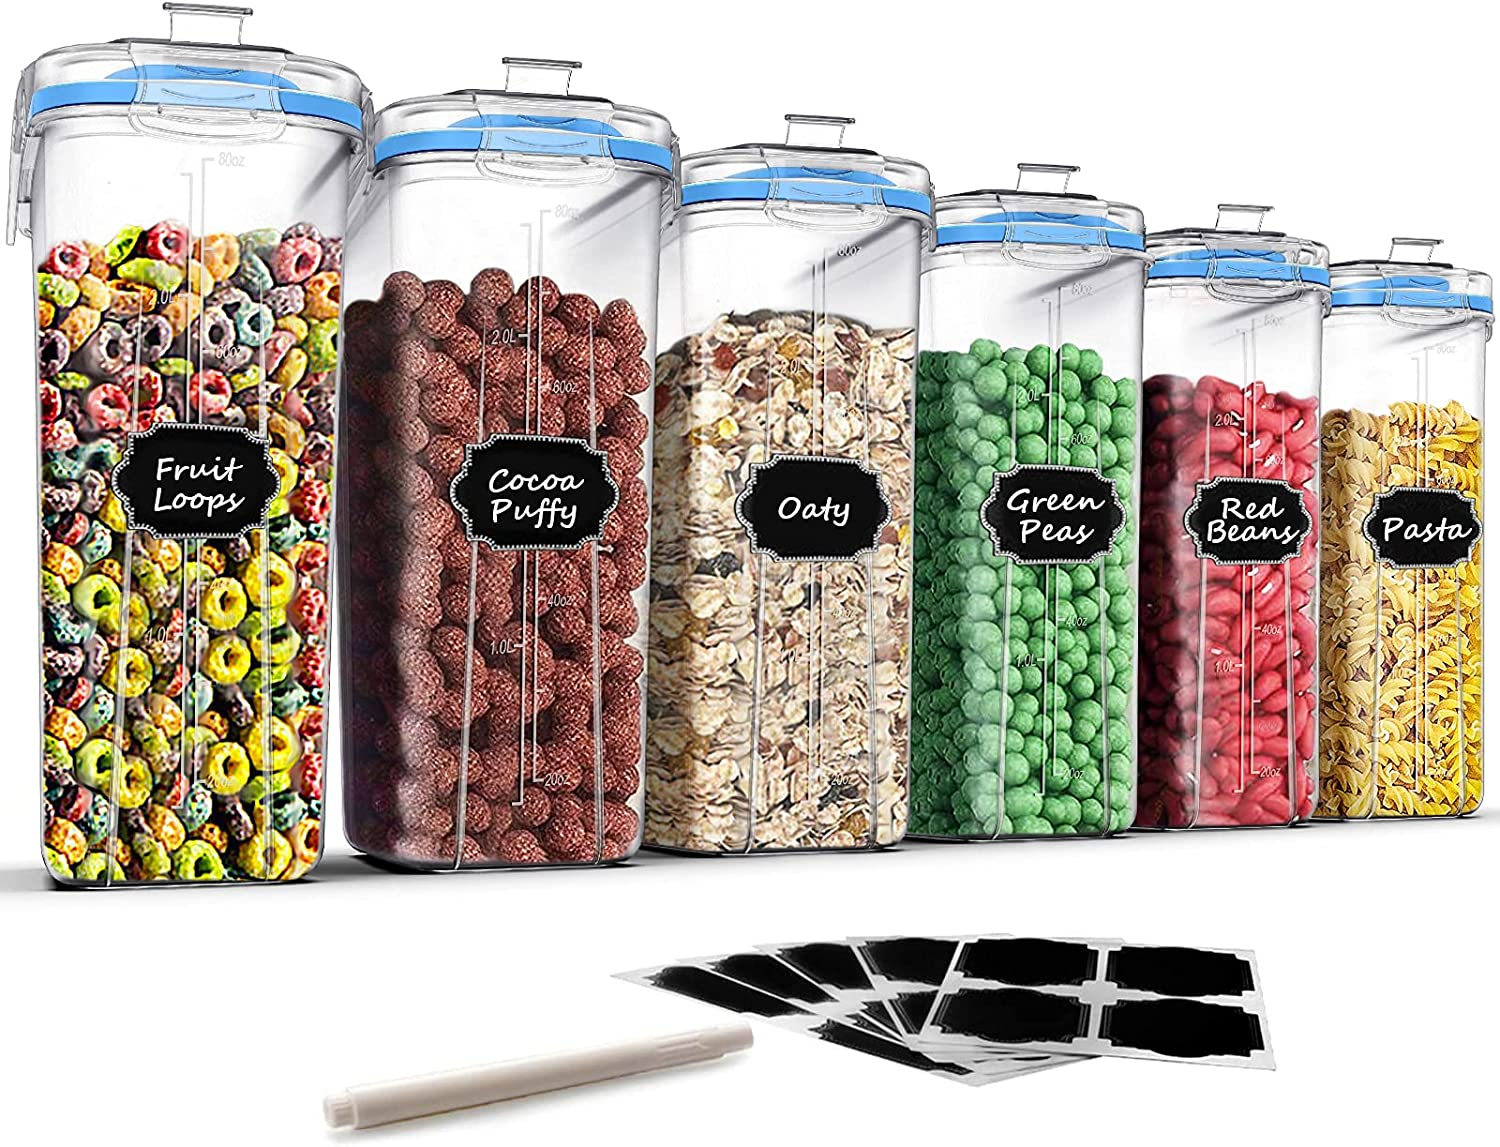 Airtight Food Storage Containers Cereal Container, Blingco Dry Food Storage Containers Kitchen Pantry Organization Storage Set of 6 [2.5L / 85.4oz] for Flour, Sugar, Snack with Blue Locking Lids